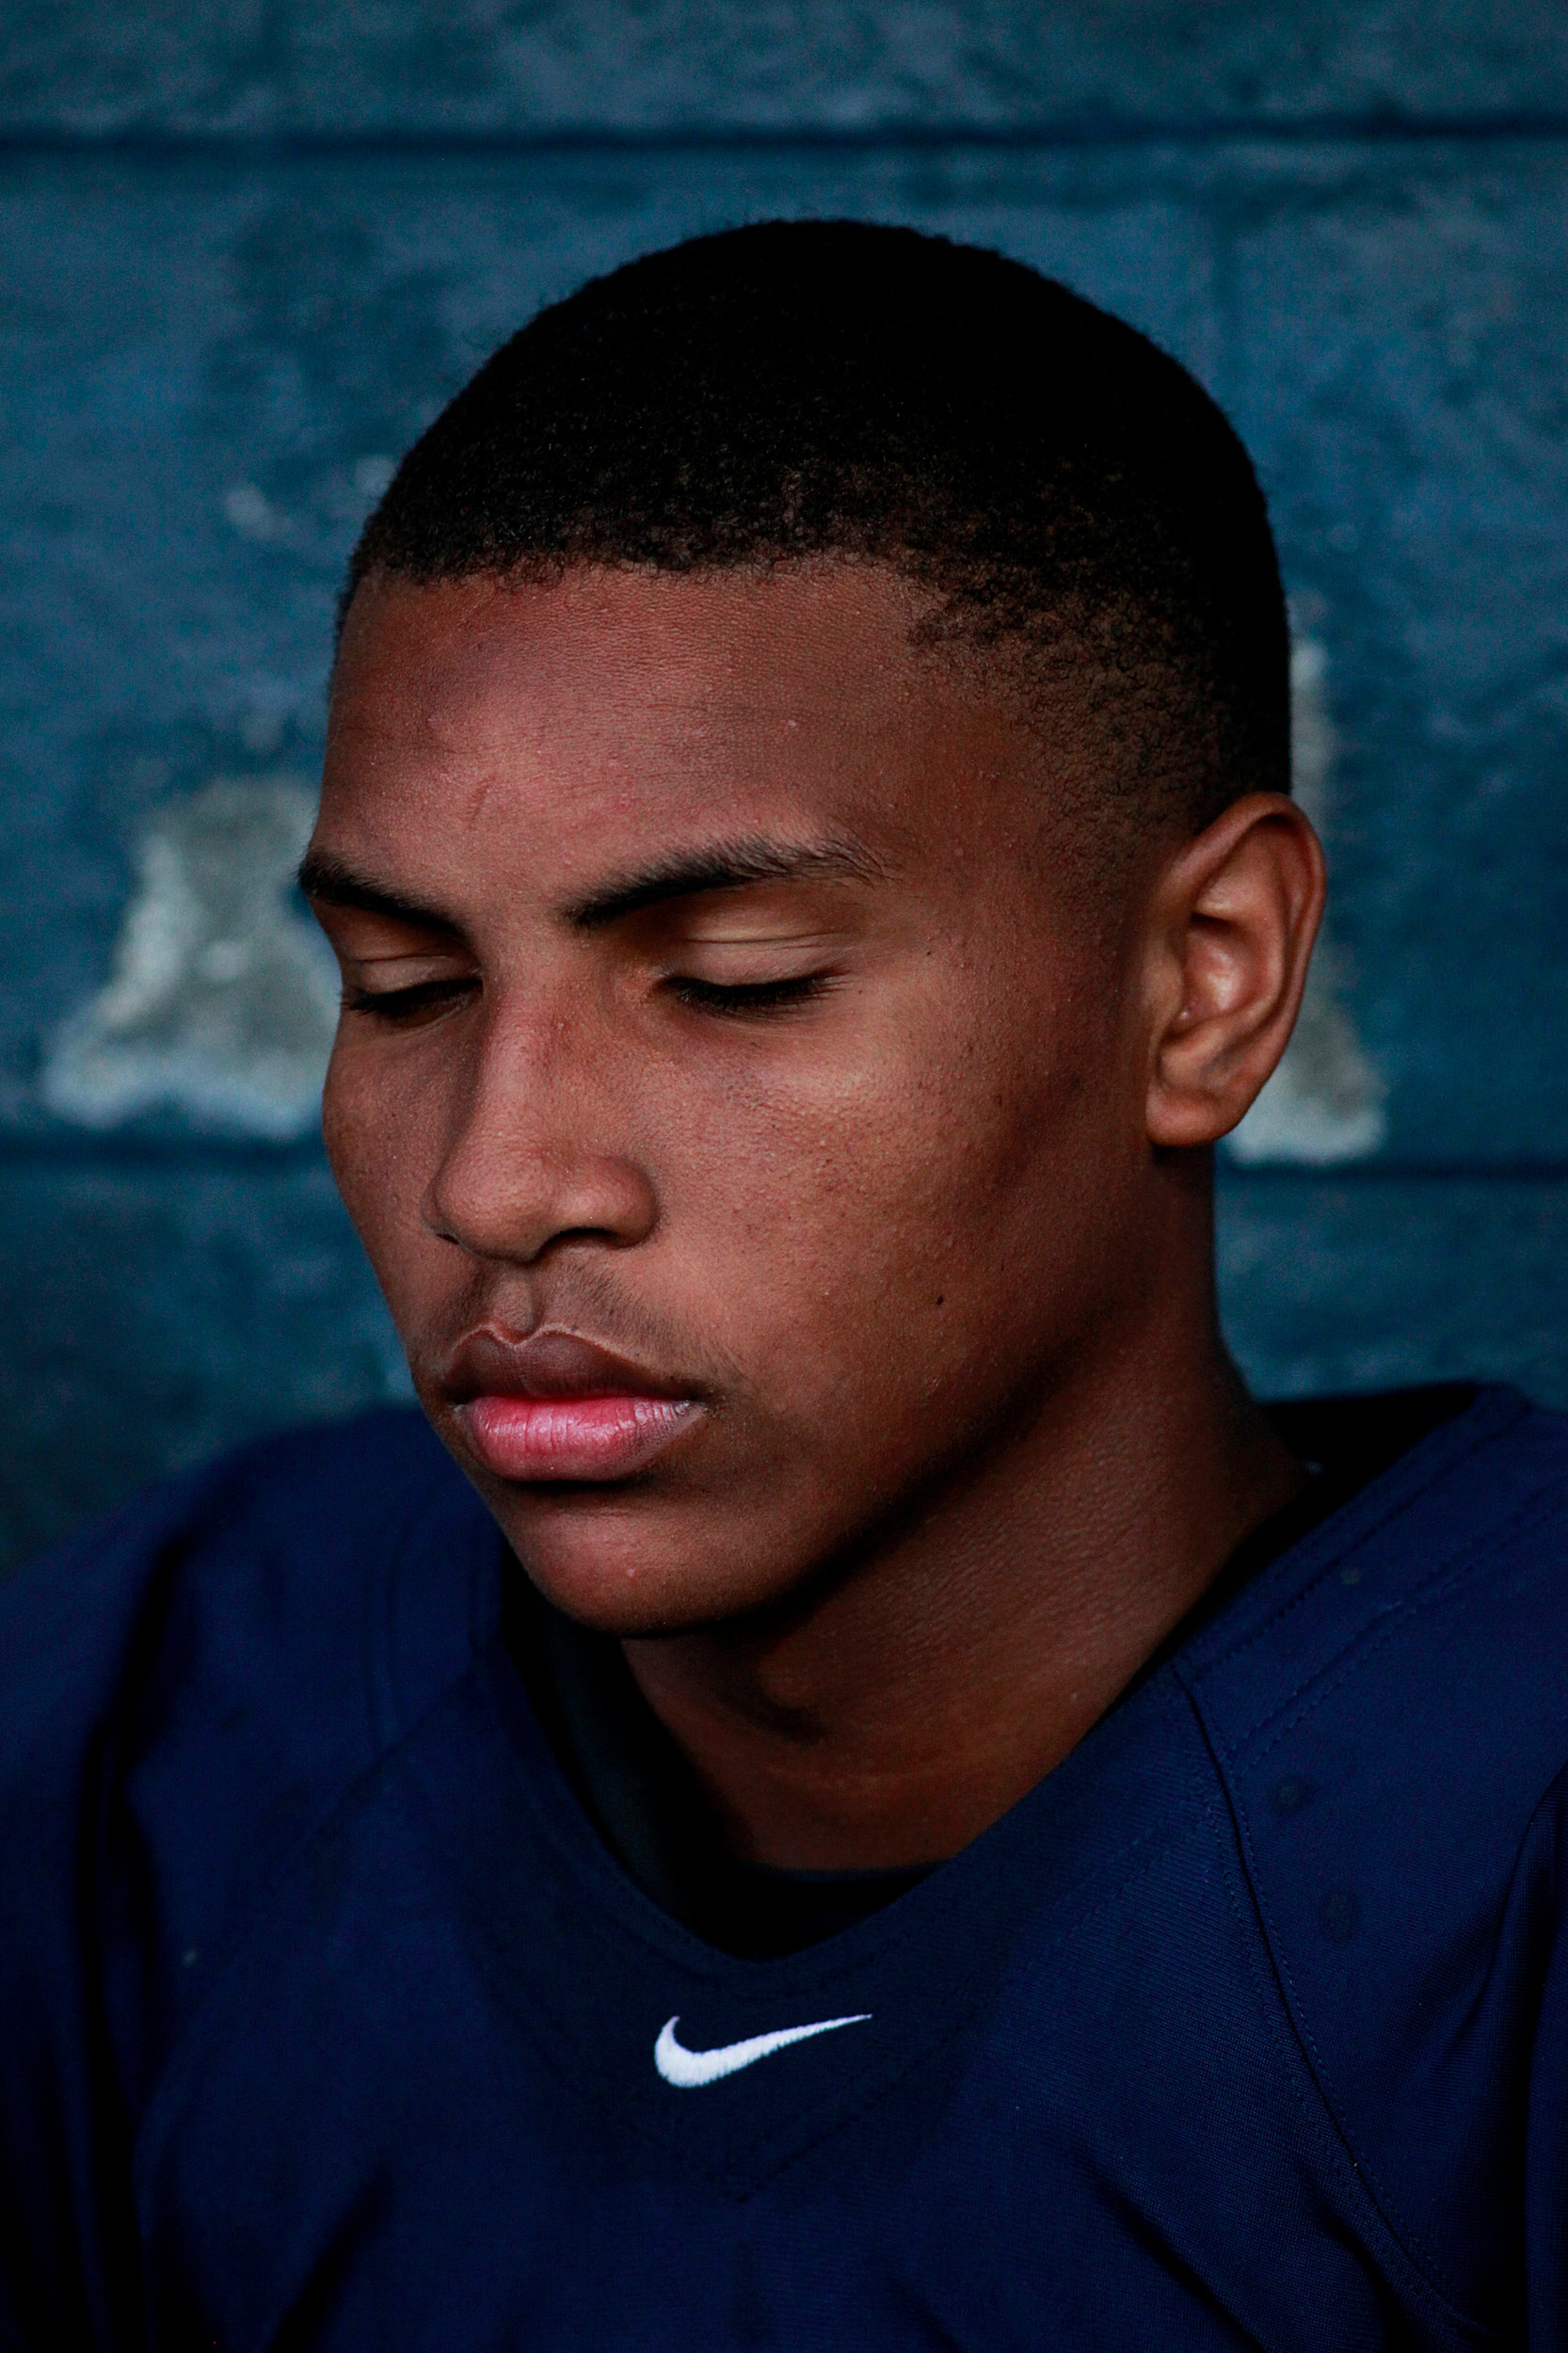 Hillside High School quarterback Randy Trice Jr. pauses during halftime of a game against Southern High School on Monday night, Sept. 5, 2016, at Hillside High School in Durham, N.C. Hillside won, 7-3.